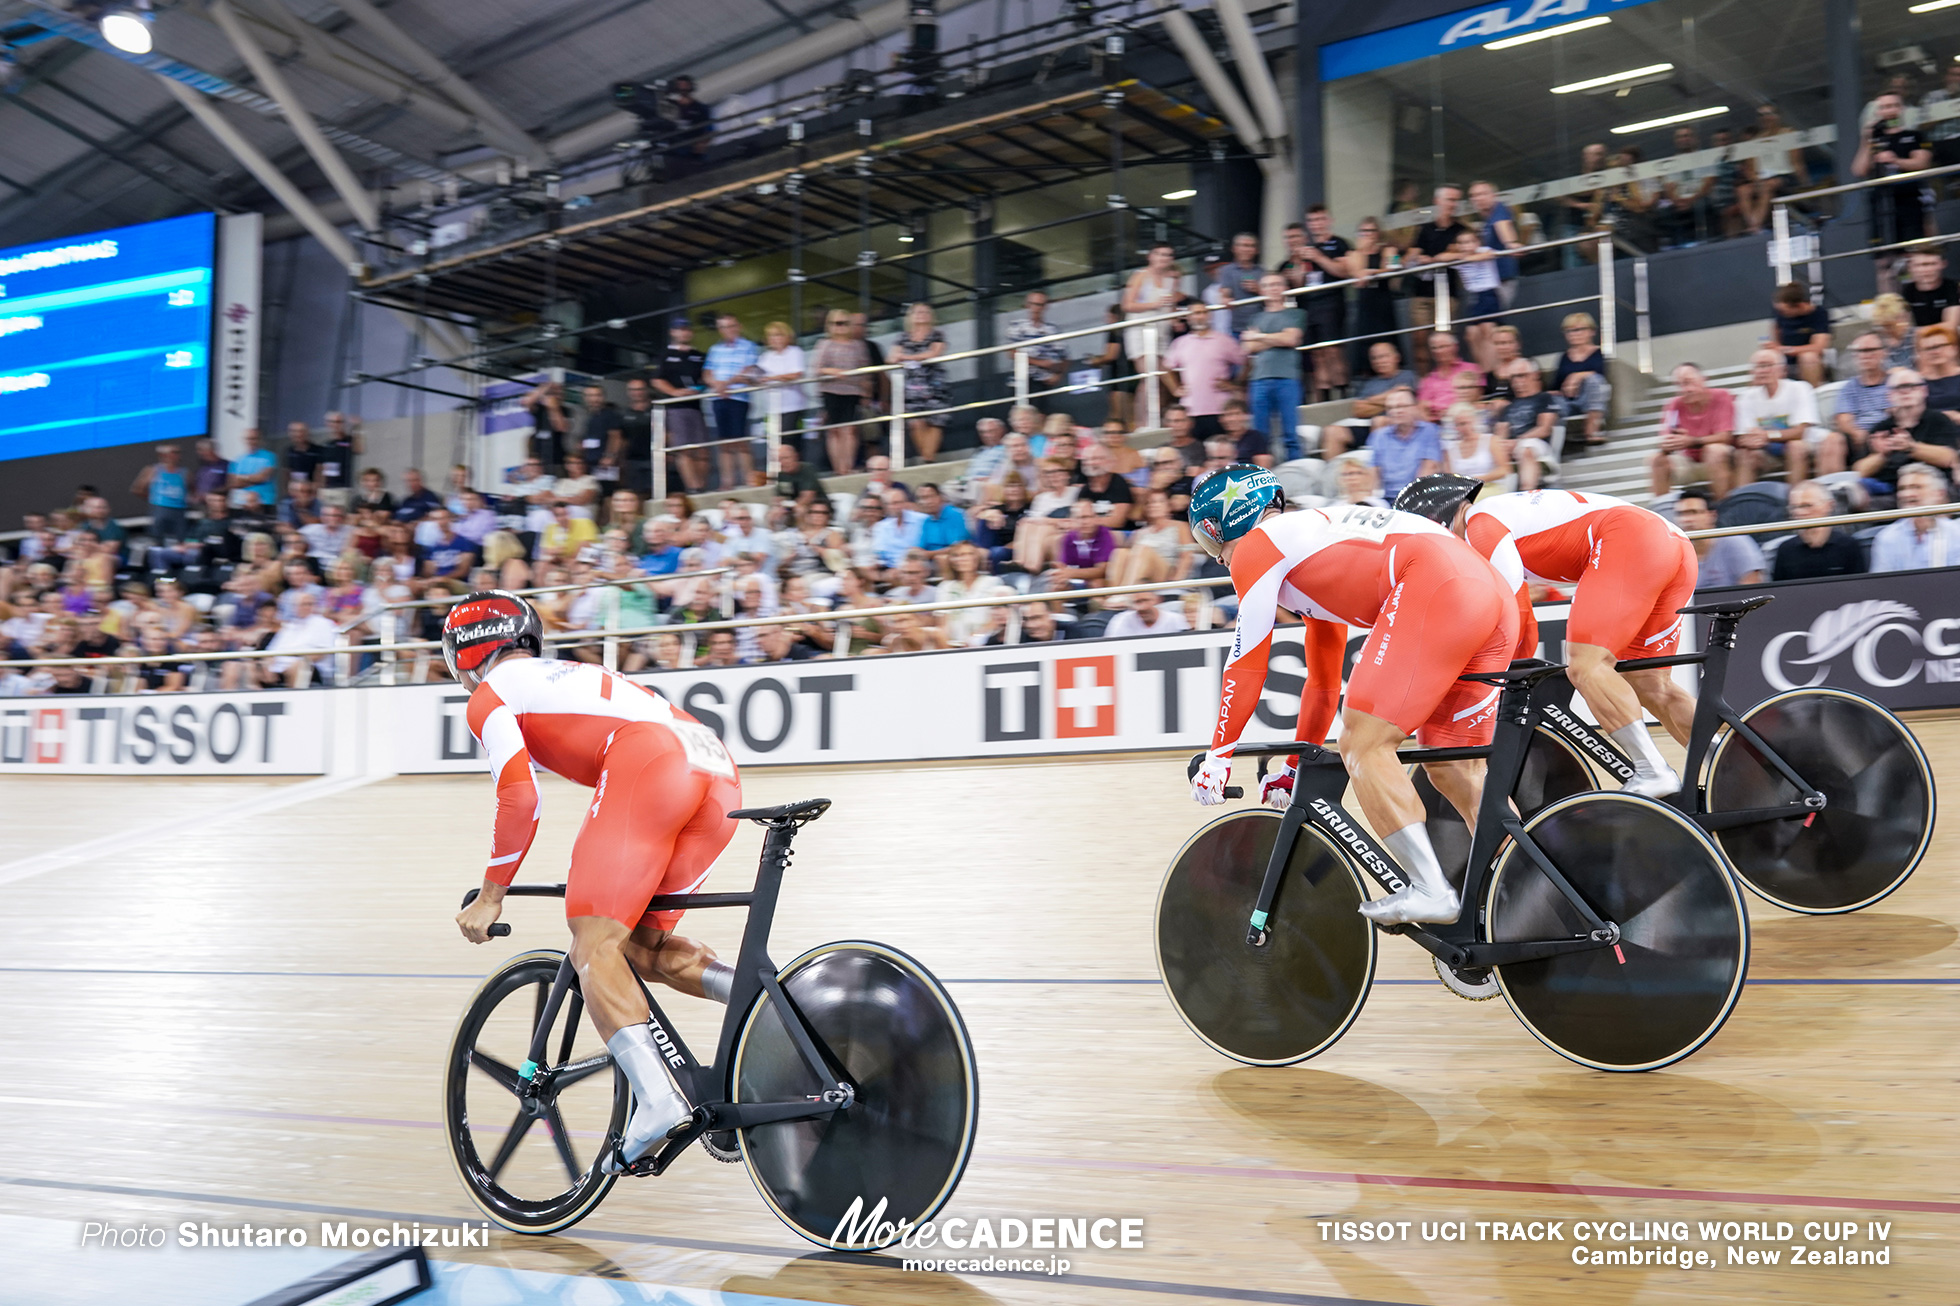 Final / Men's Team Sprint / TISSOT UCI TRACK CYCLING WORLD CUP IV, Cambridge, New Zealand, 深谷知広 新田祐大 雨谷一樹